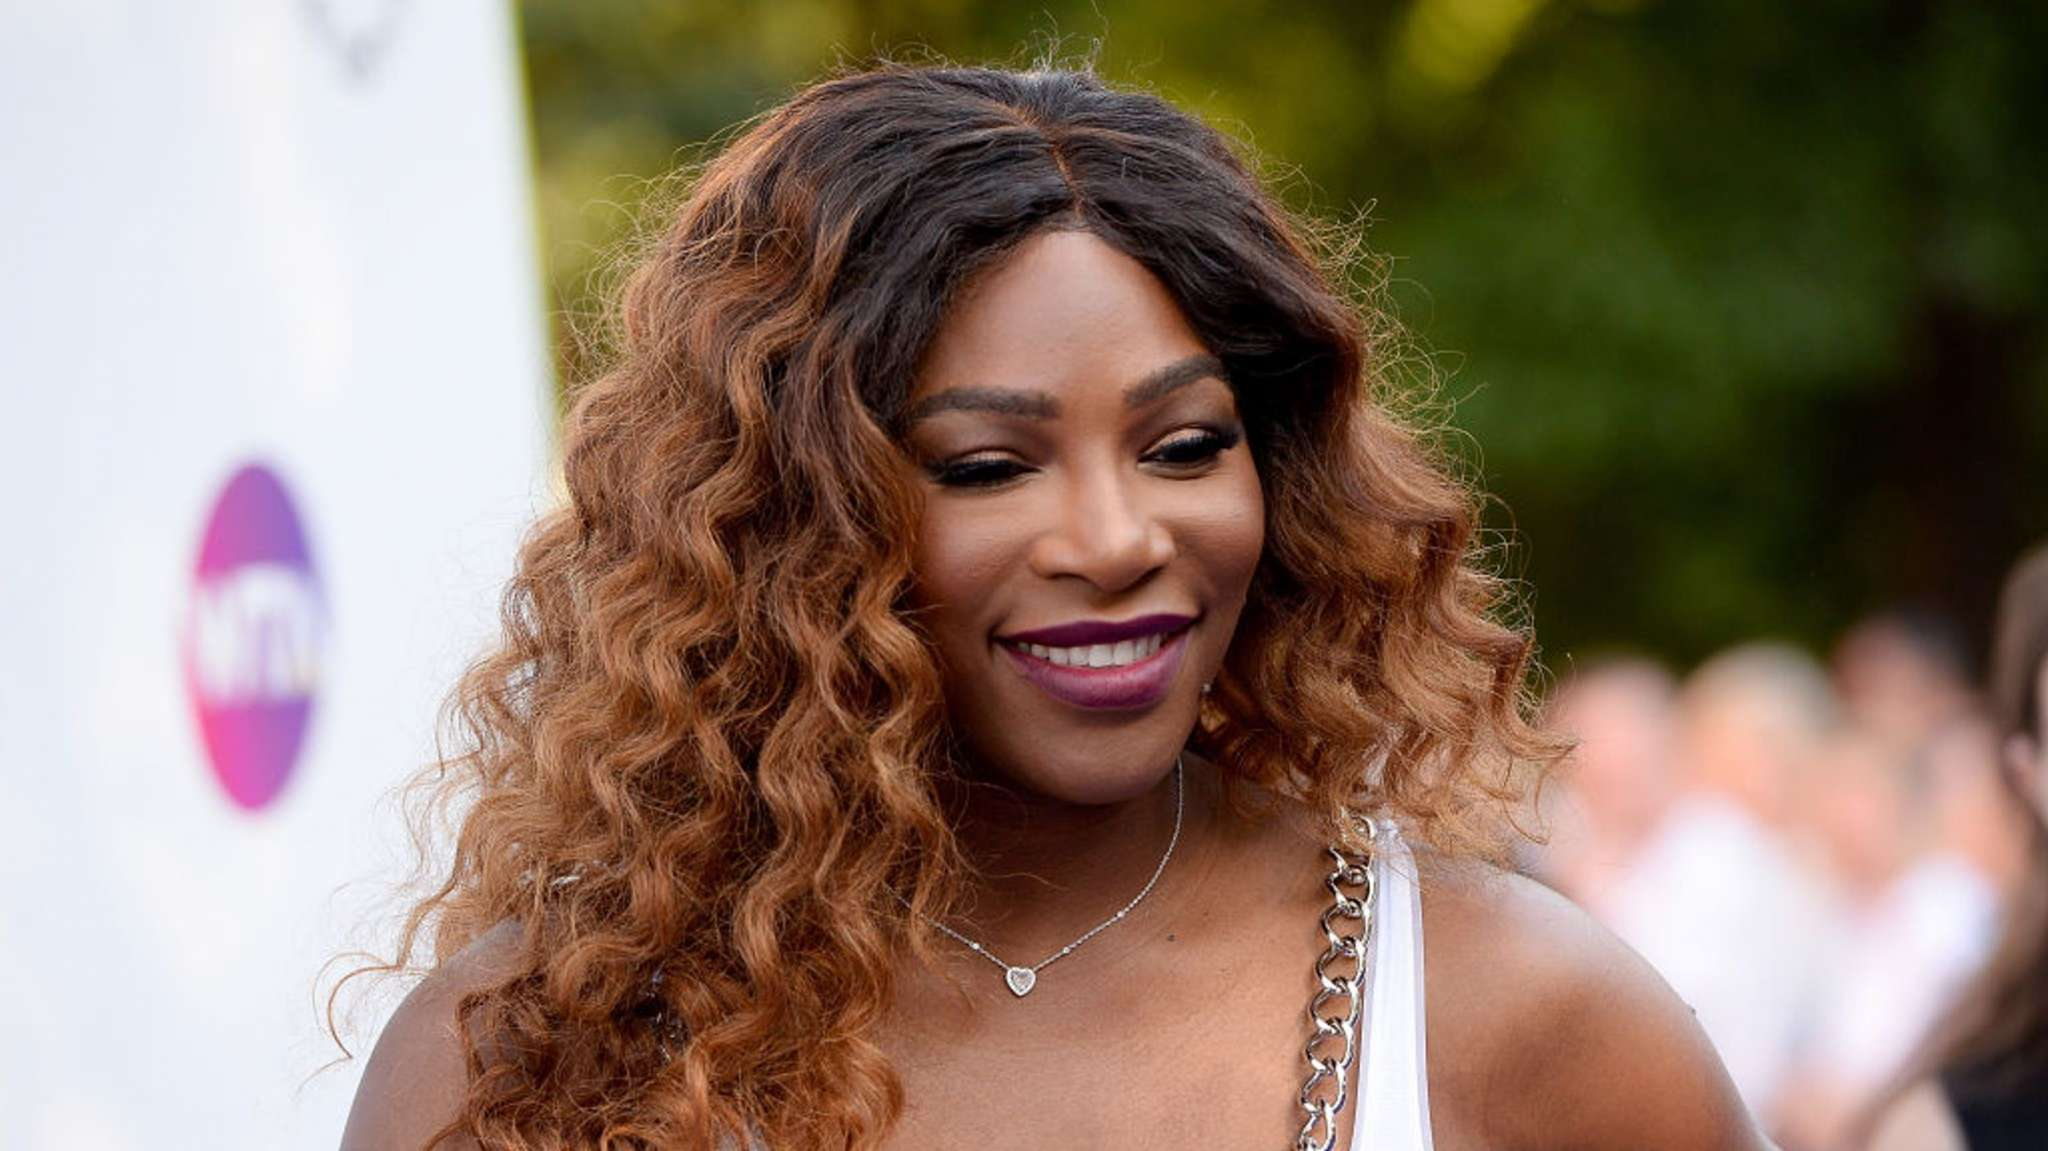 896dbae901ca Serena Williams Rocks Fishnets And A Teal Romper At The Australian Open And  Everyone Is A Fan!